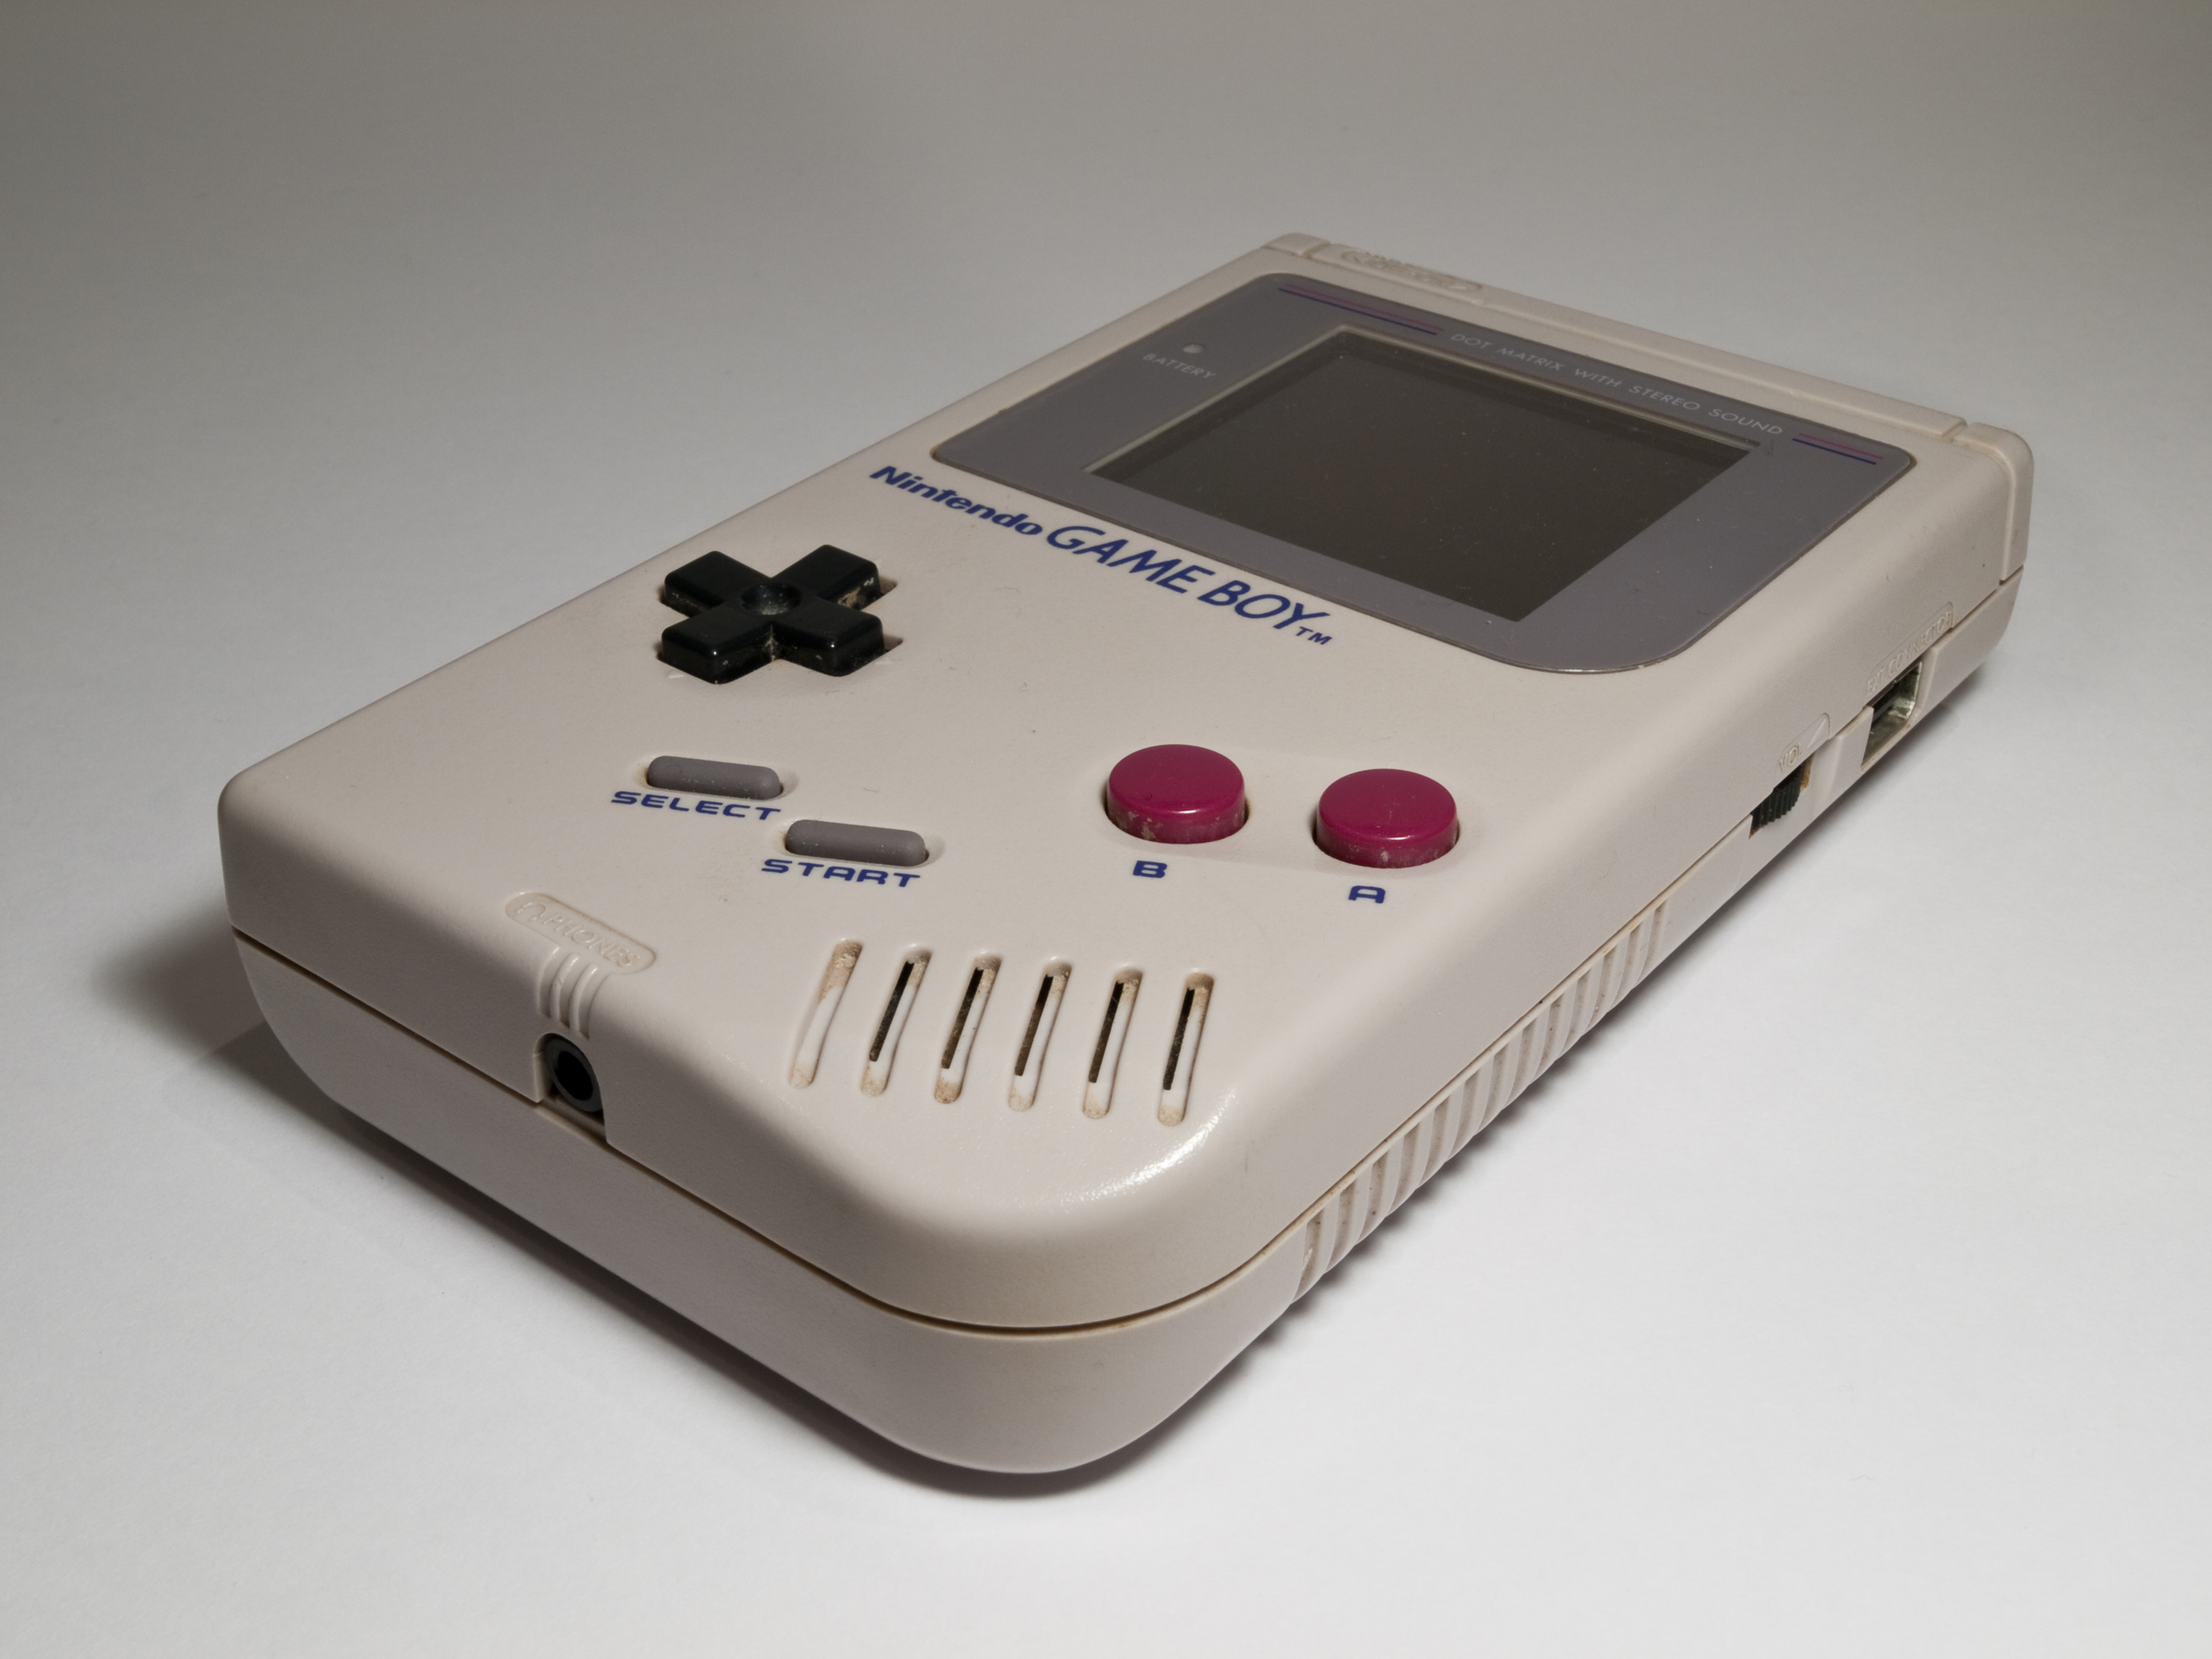 File:Nintendo Gameboy2.jpg - Wikimedia Commons